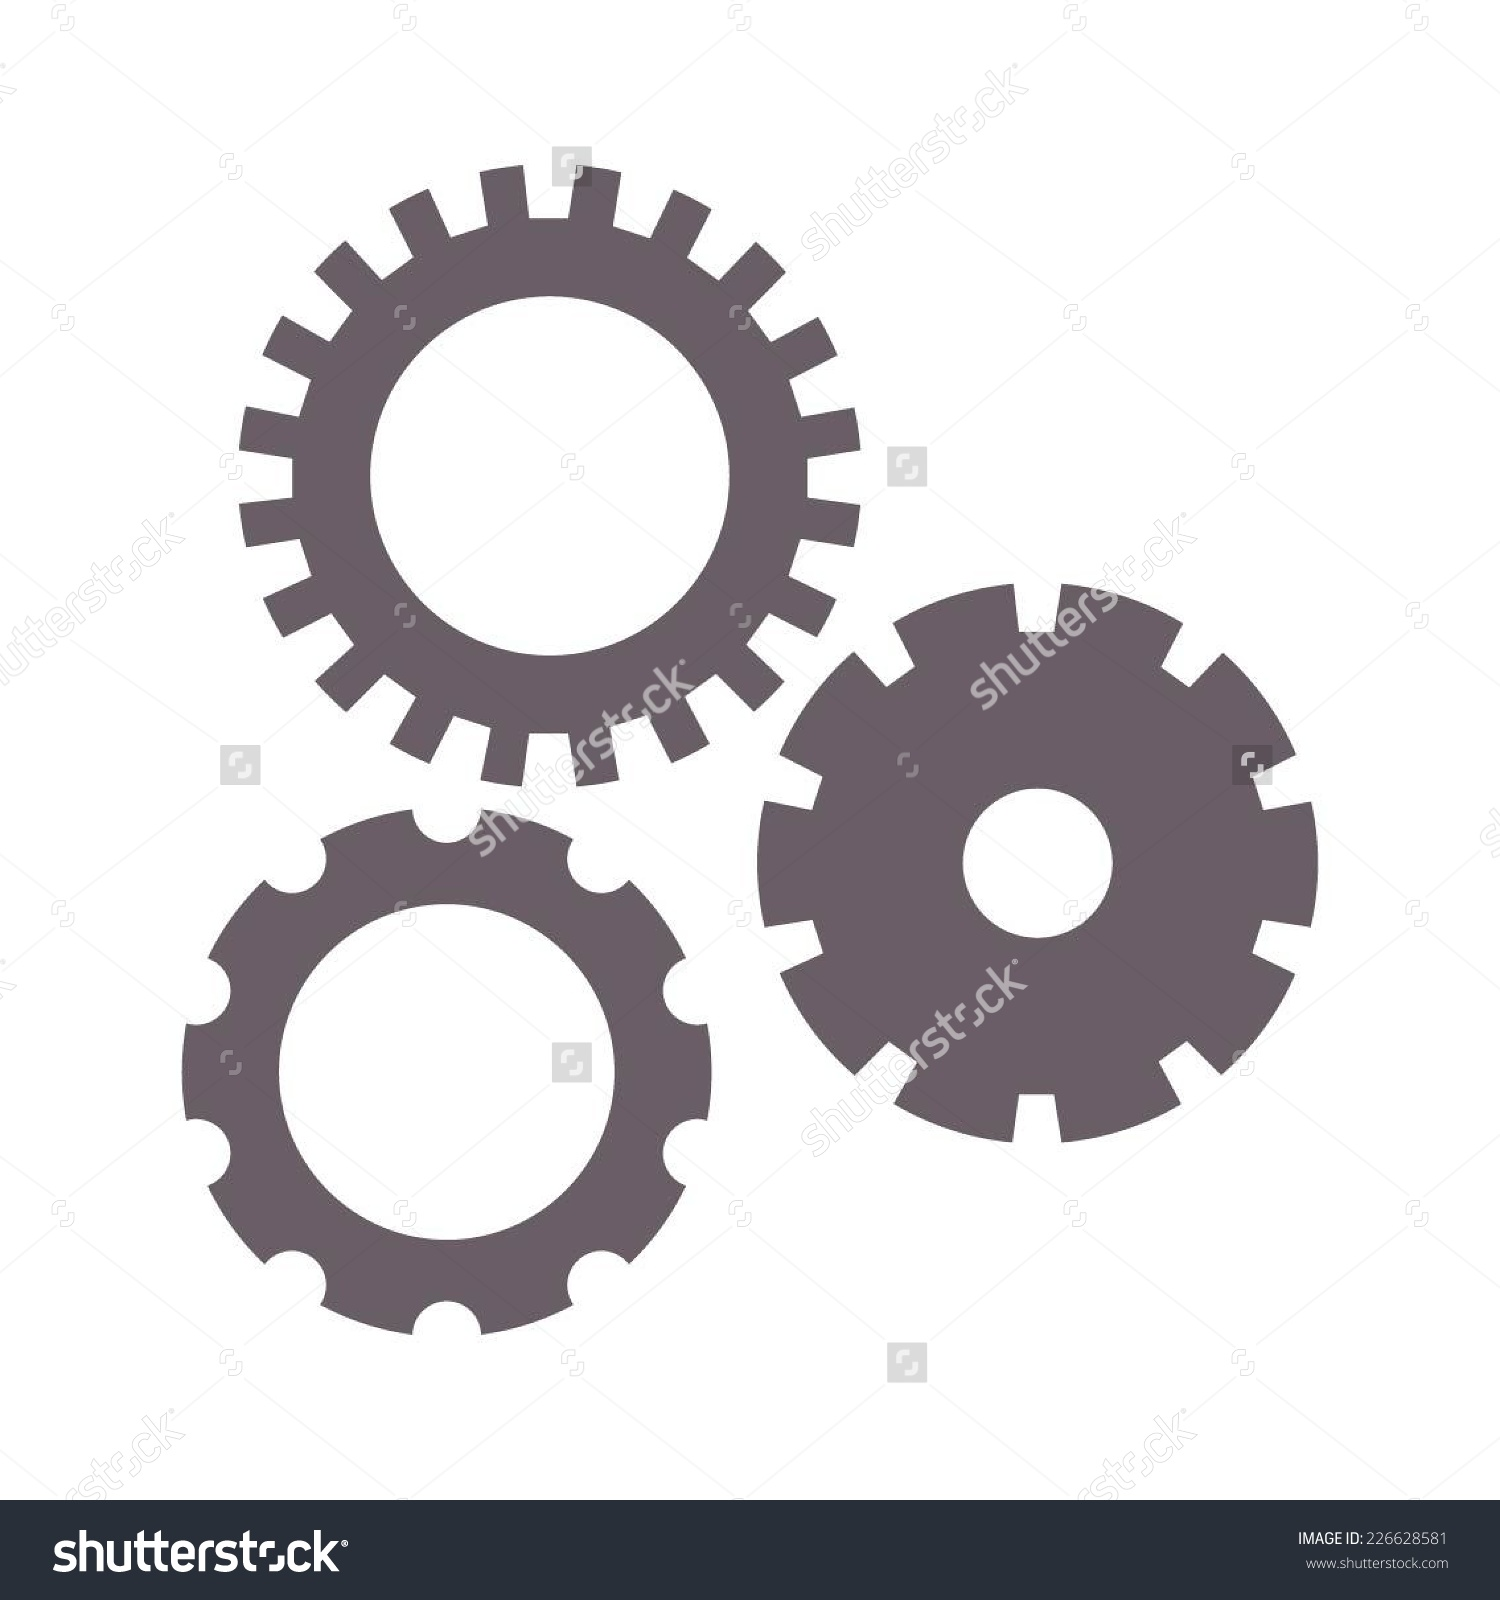 Vector Illustration Spare Parts Bushings Gears Stock Vector.